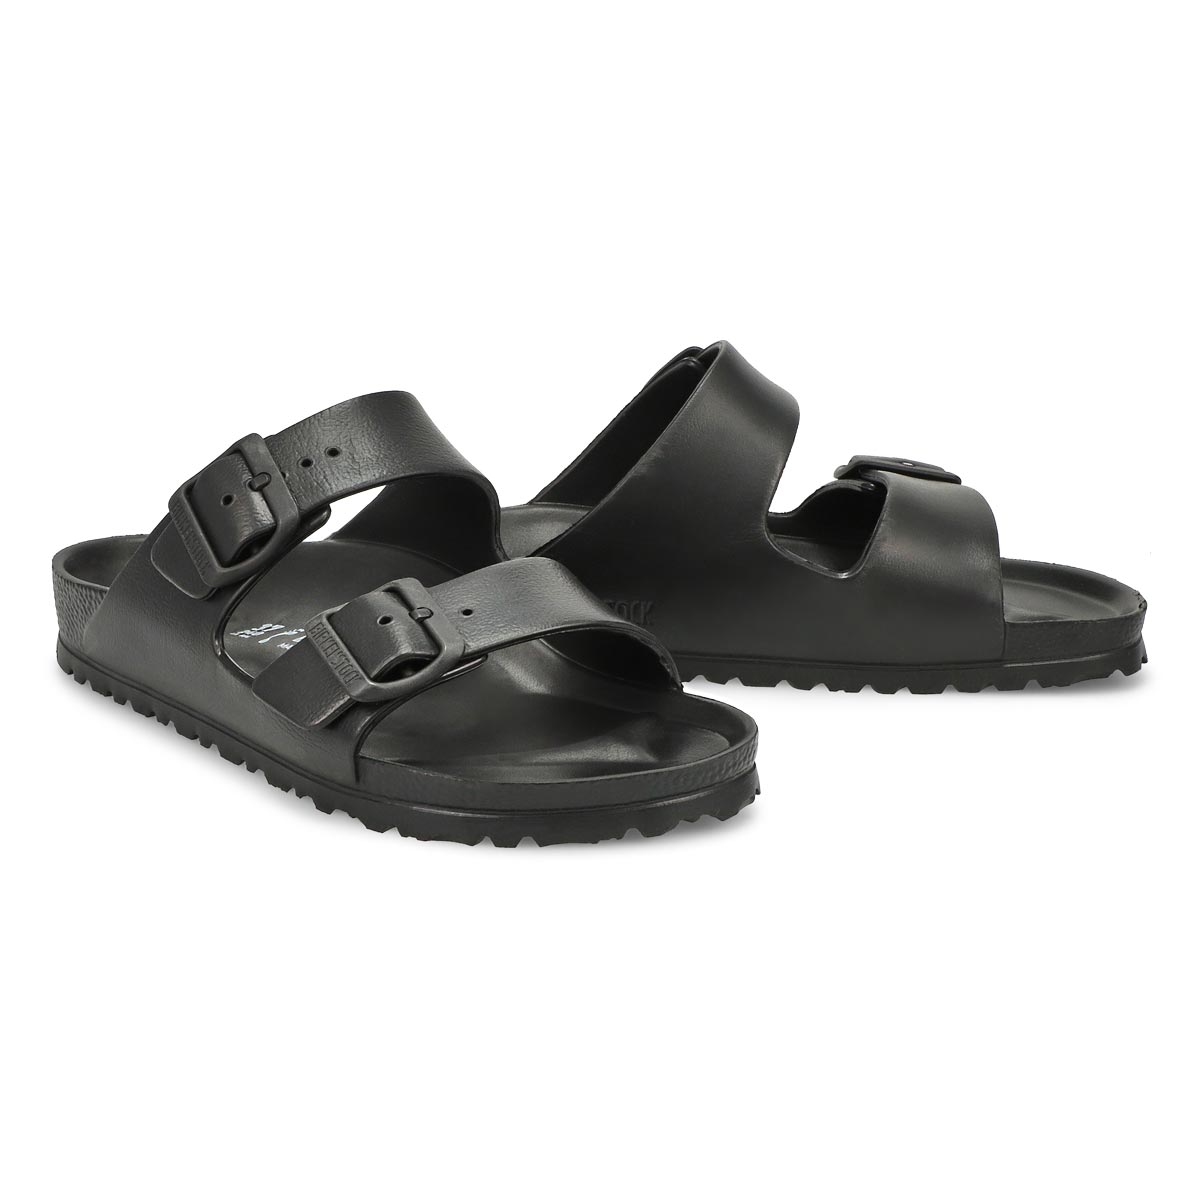 Lds Arizona black EVA sandal - Narrow